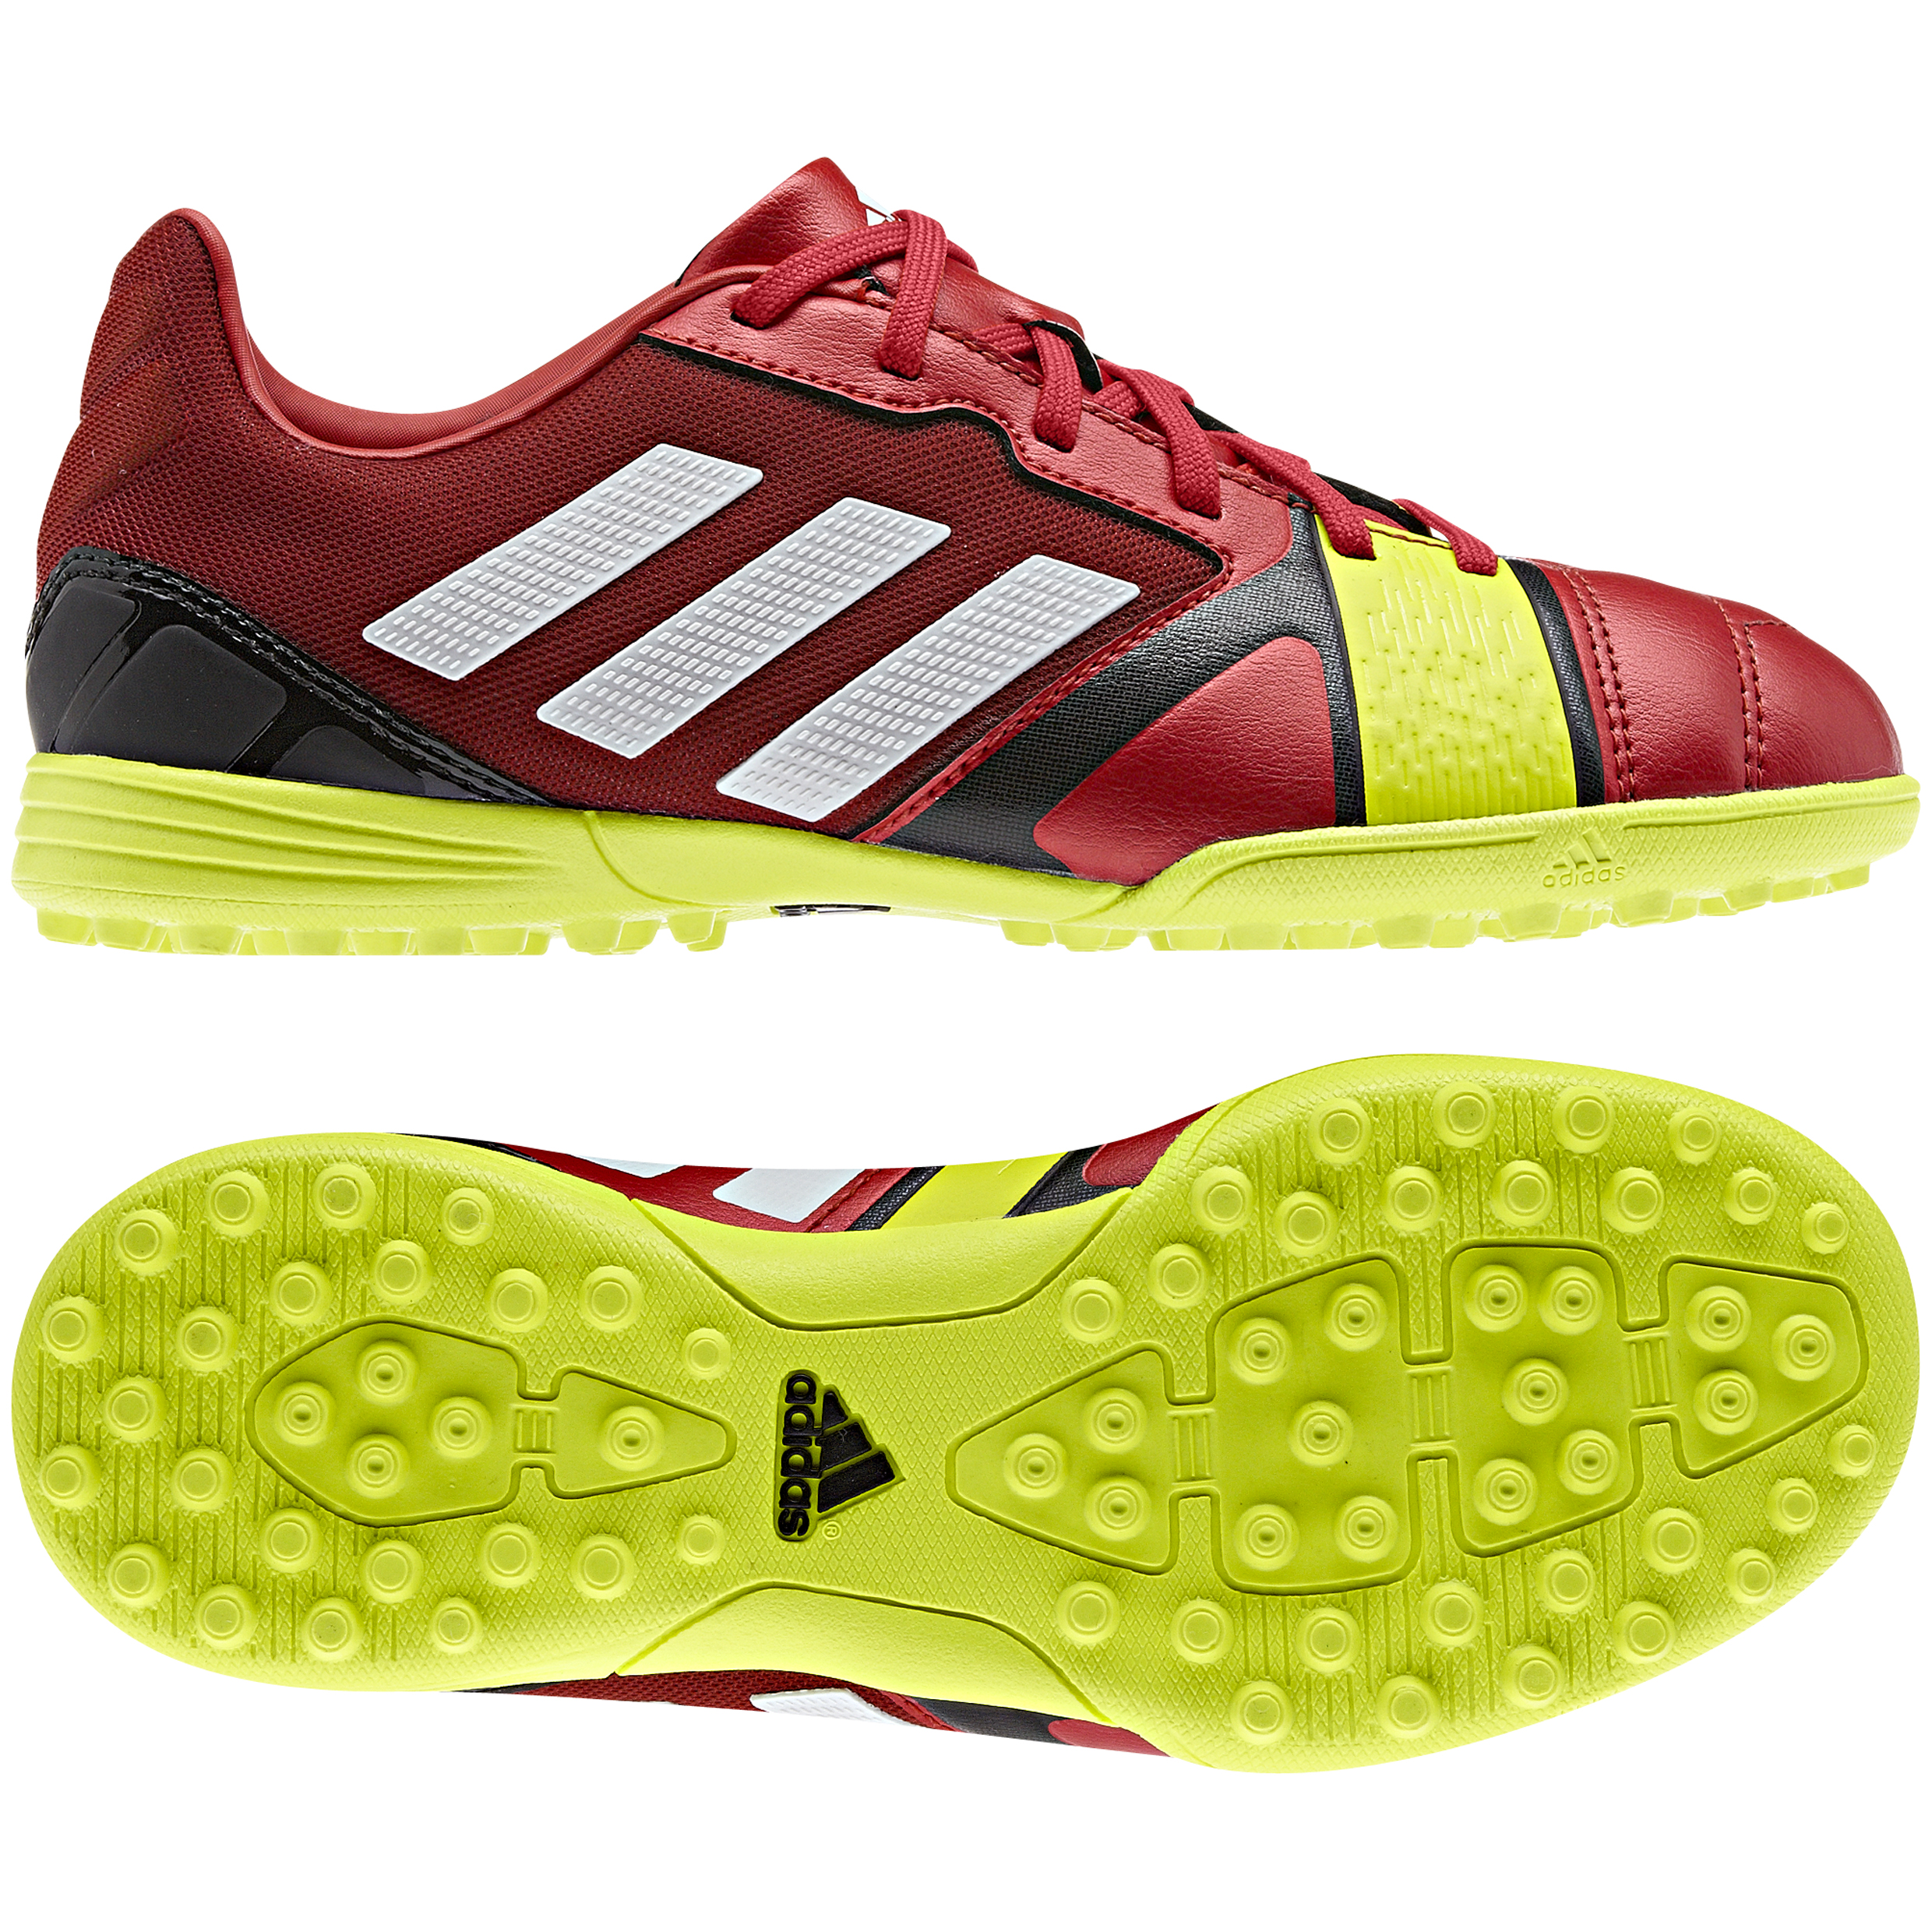 Nitrocharge 2.0 TRX Astroturf Red